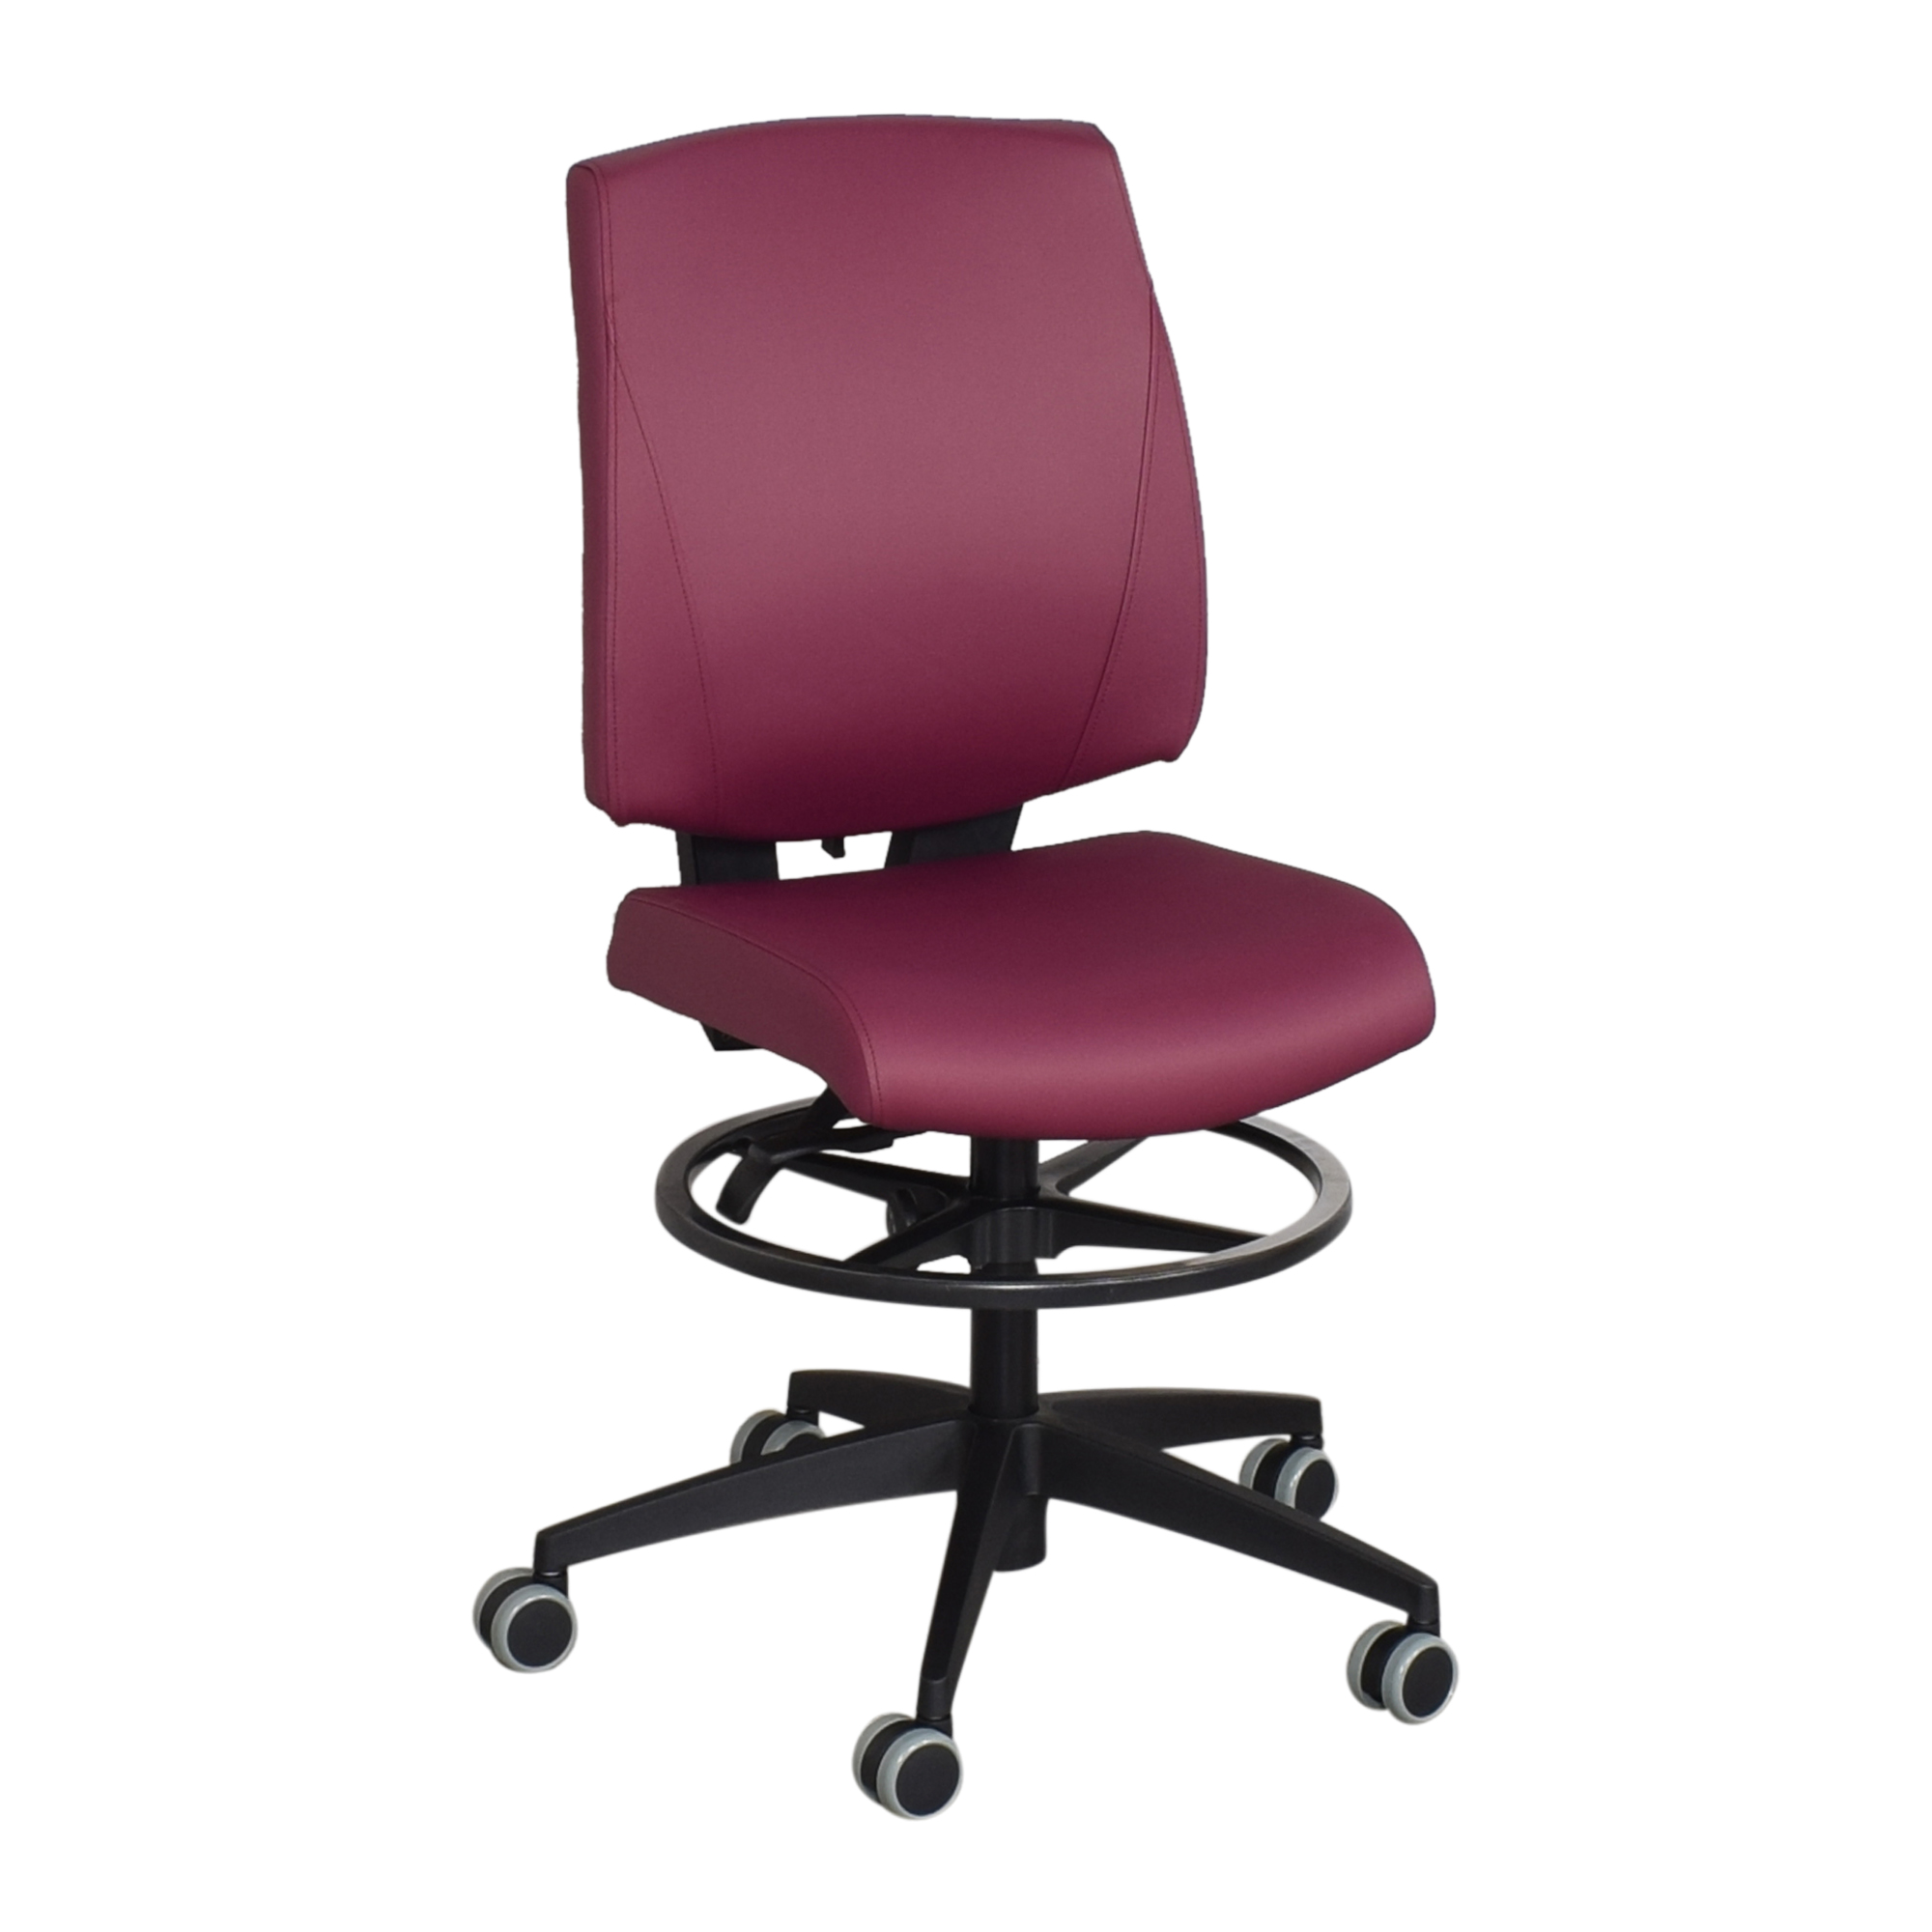 shop Global Furniture Group Global Furniture Group G1 Ergo Select Armless Medium Back Chair  online